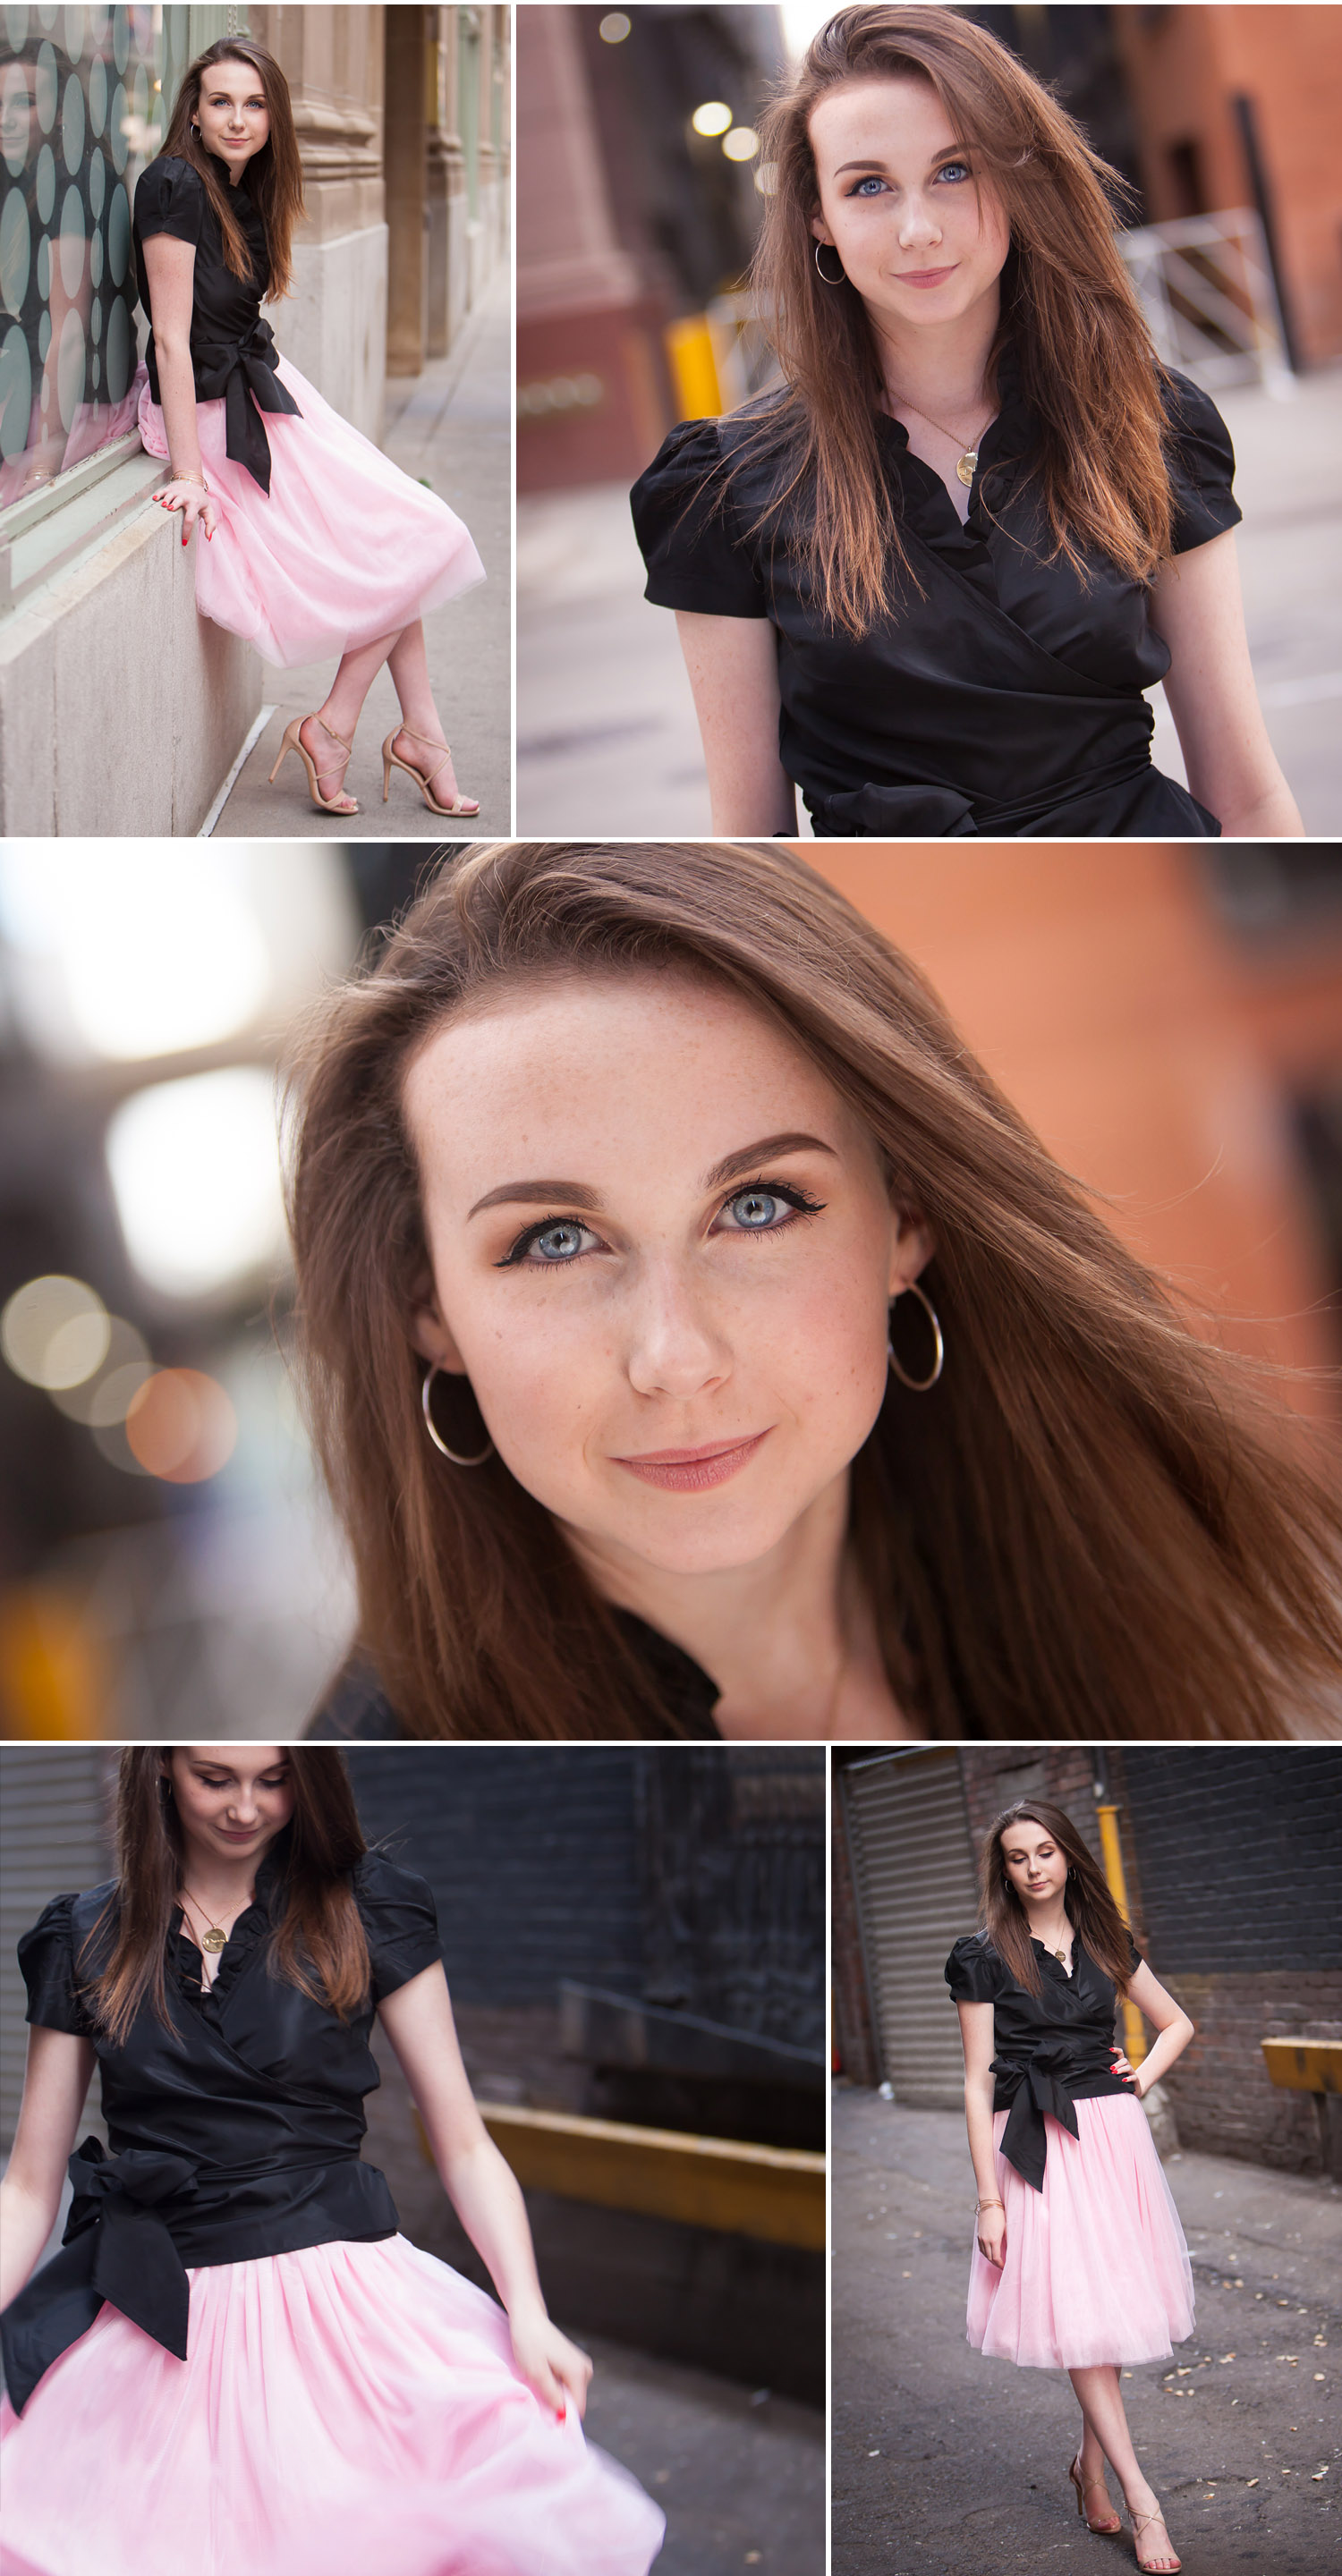 SATC Inspired urban High School Senior pictures in pink tulle skirt in an alley in downtown Denver with photographer Jennifer Koskinen of Merritt Portrait Studio